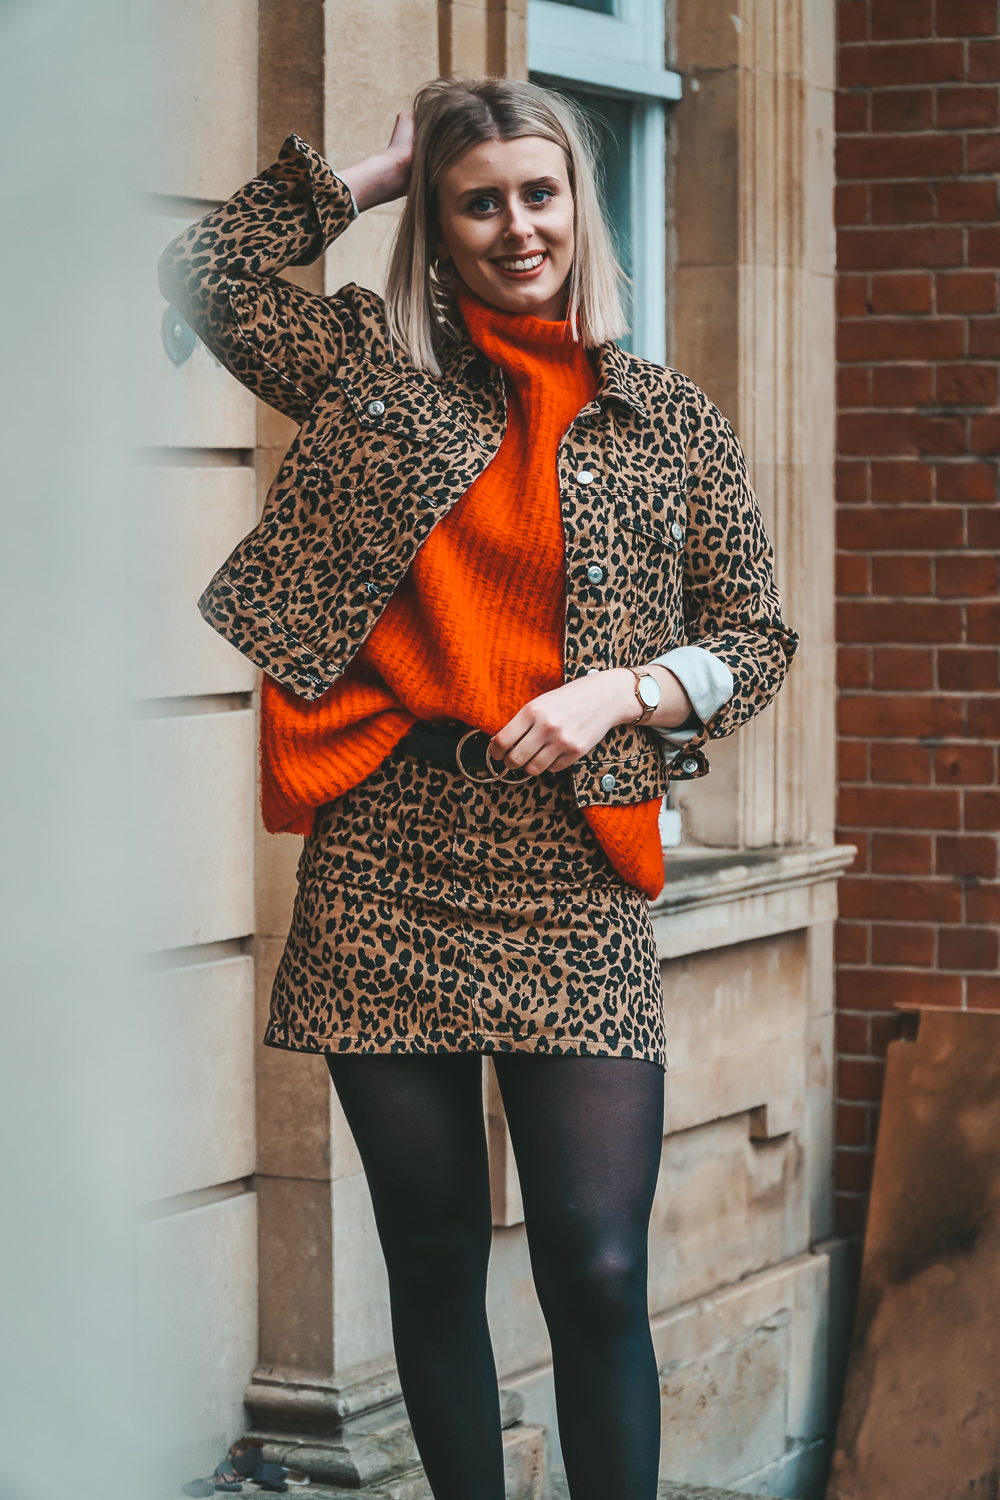 Styling leopard print into 2019 | Lucy-cole